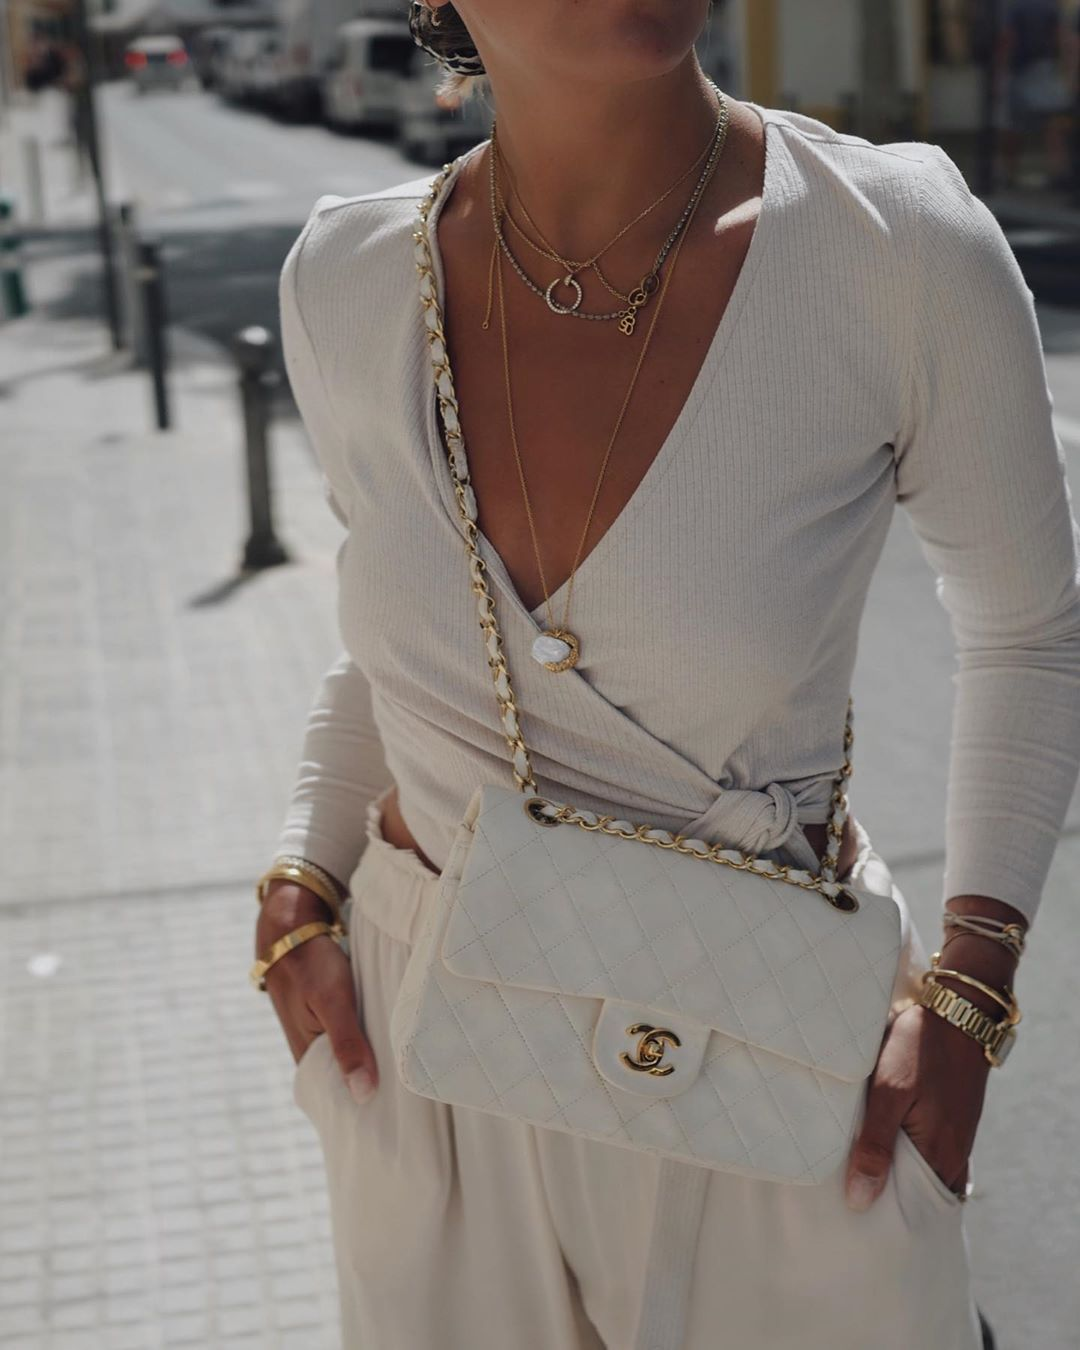 How To Clean Your White Luxury Handbag and Make Sure It Stays White White Chanel Flap Bag